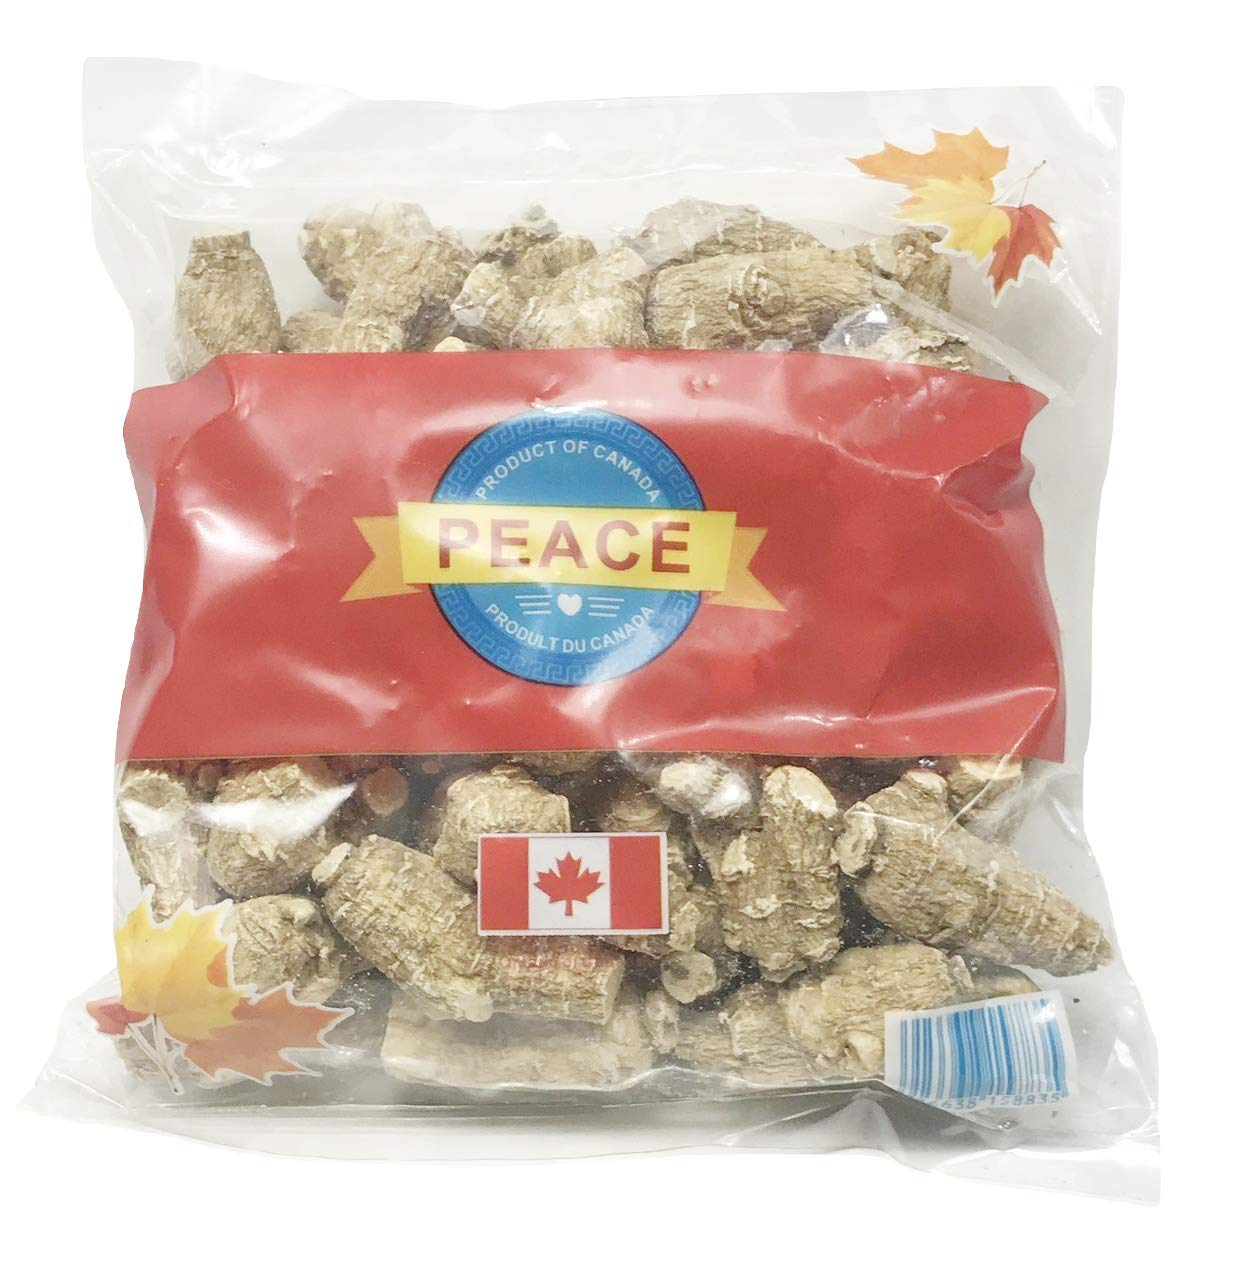 Peace Pavilion Several Years Premium Semi-Wild Ginseng_Bag Package 454g